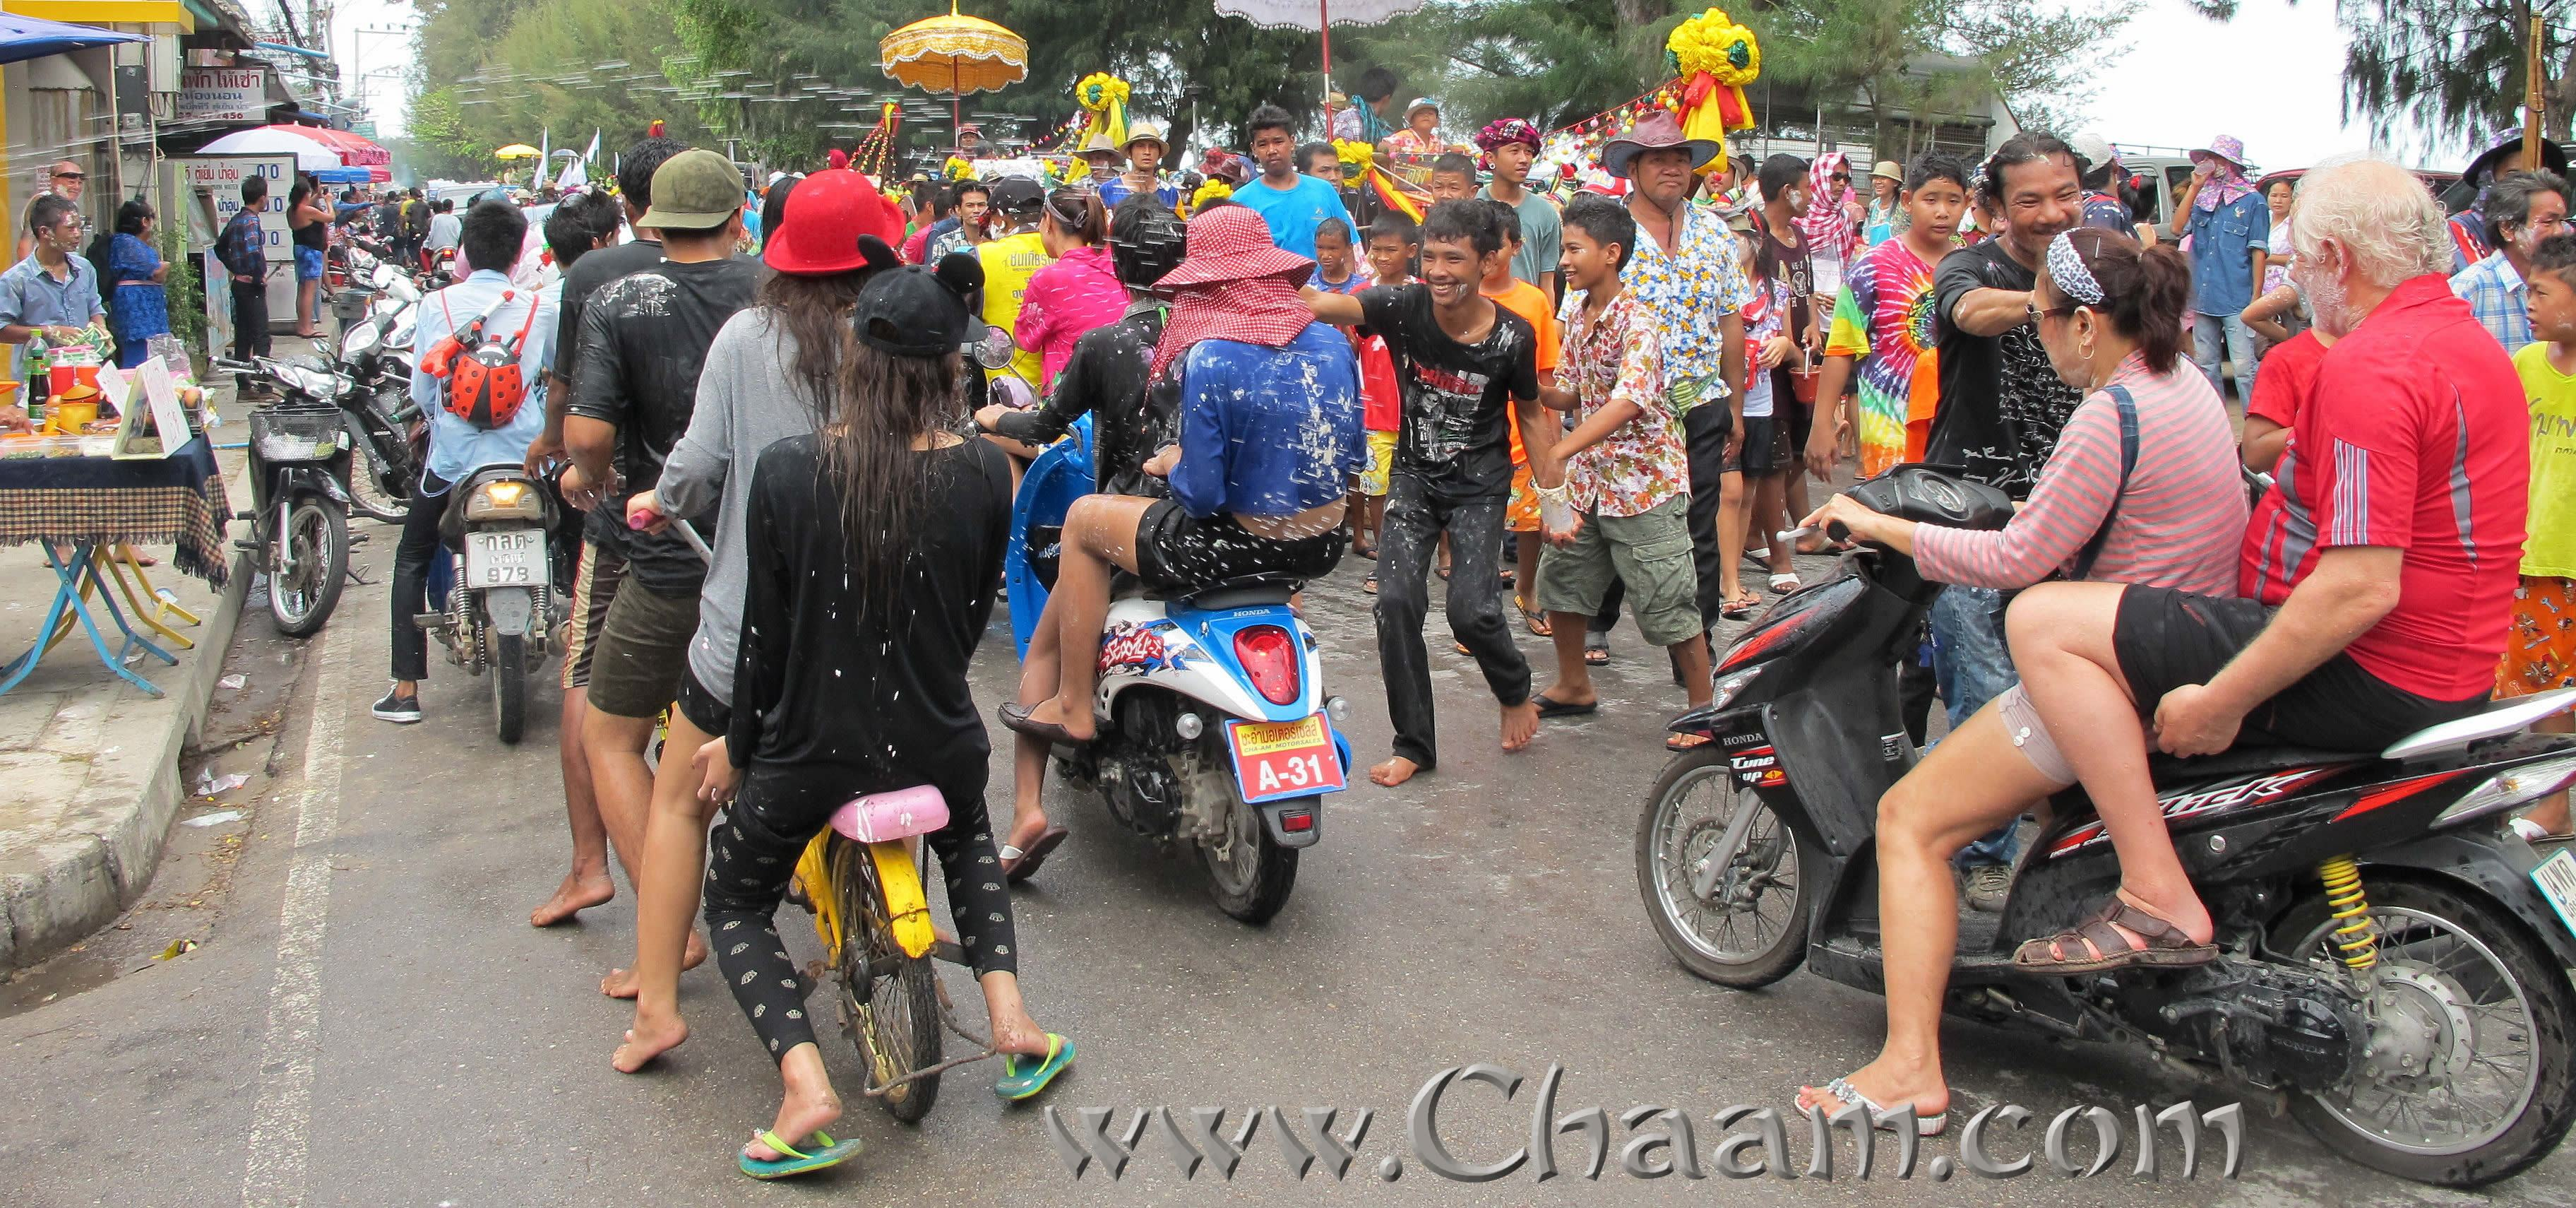 Steet Party in Cha-Am at Songkran